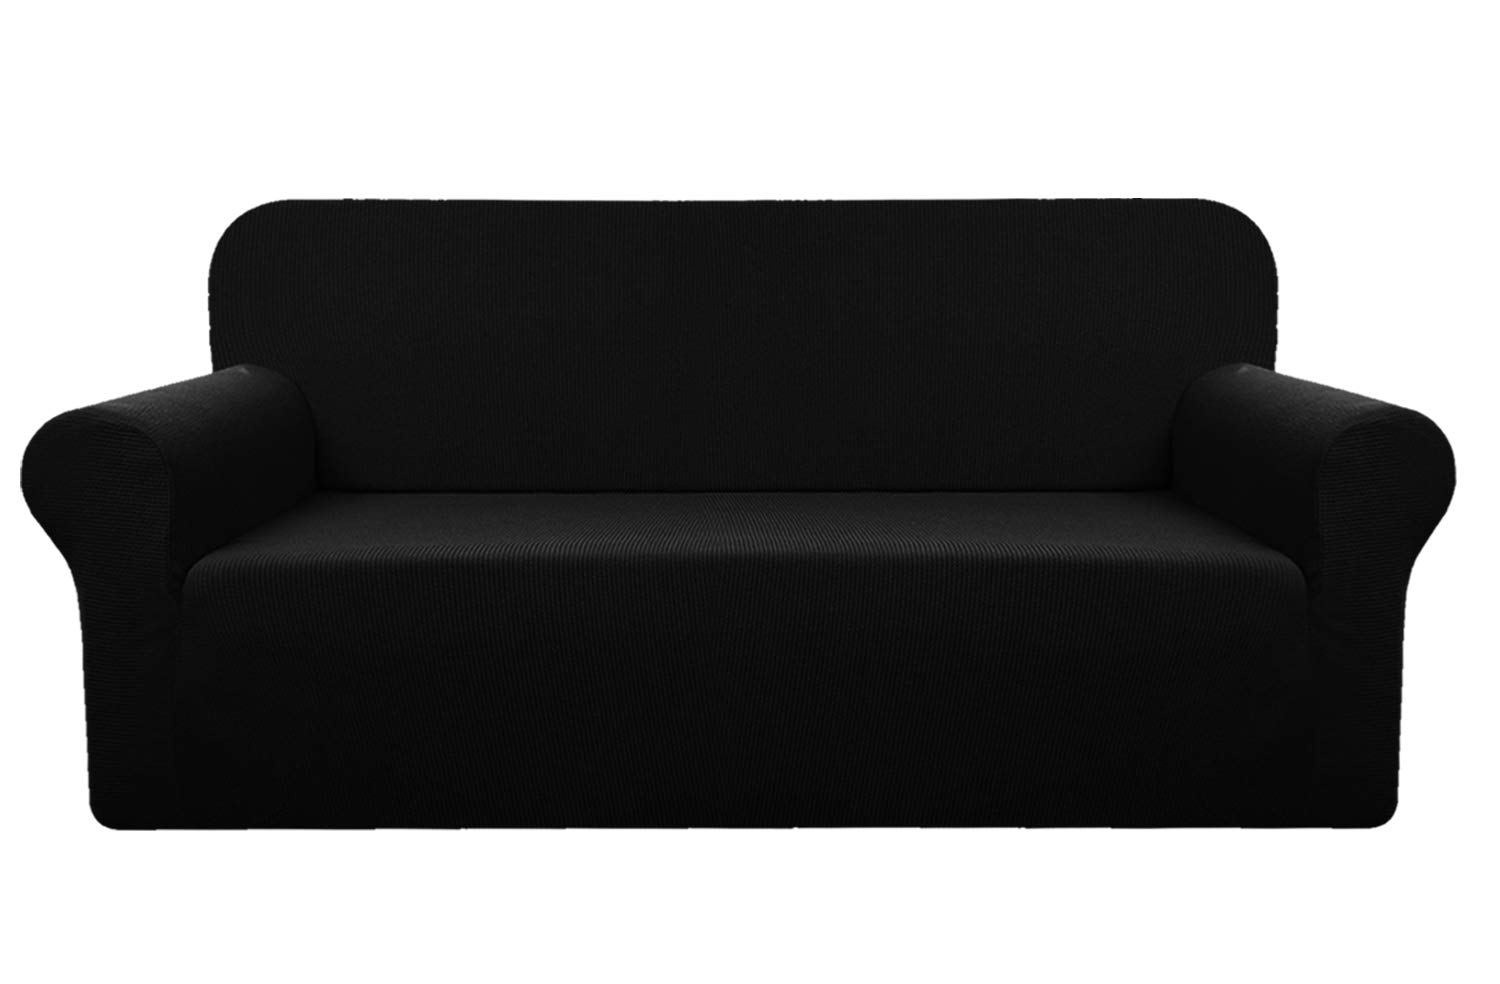 YUUHUM Stripes Loveseat Covers, Super Stretch Loveseat Slipcovers 2 Cushions Couch Covers Pet Dog Love Seat Sofa Covers Protectors (Loveseat, Black)